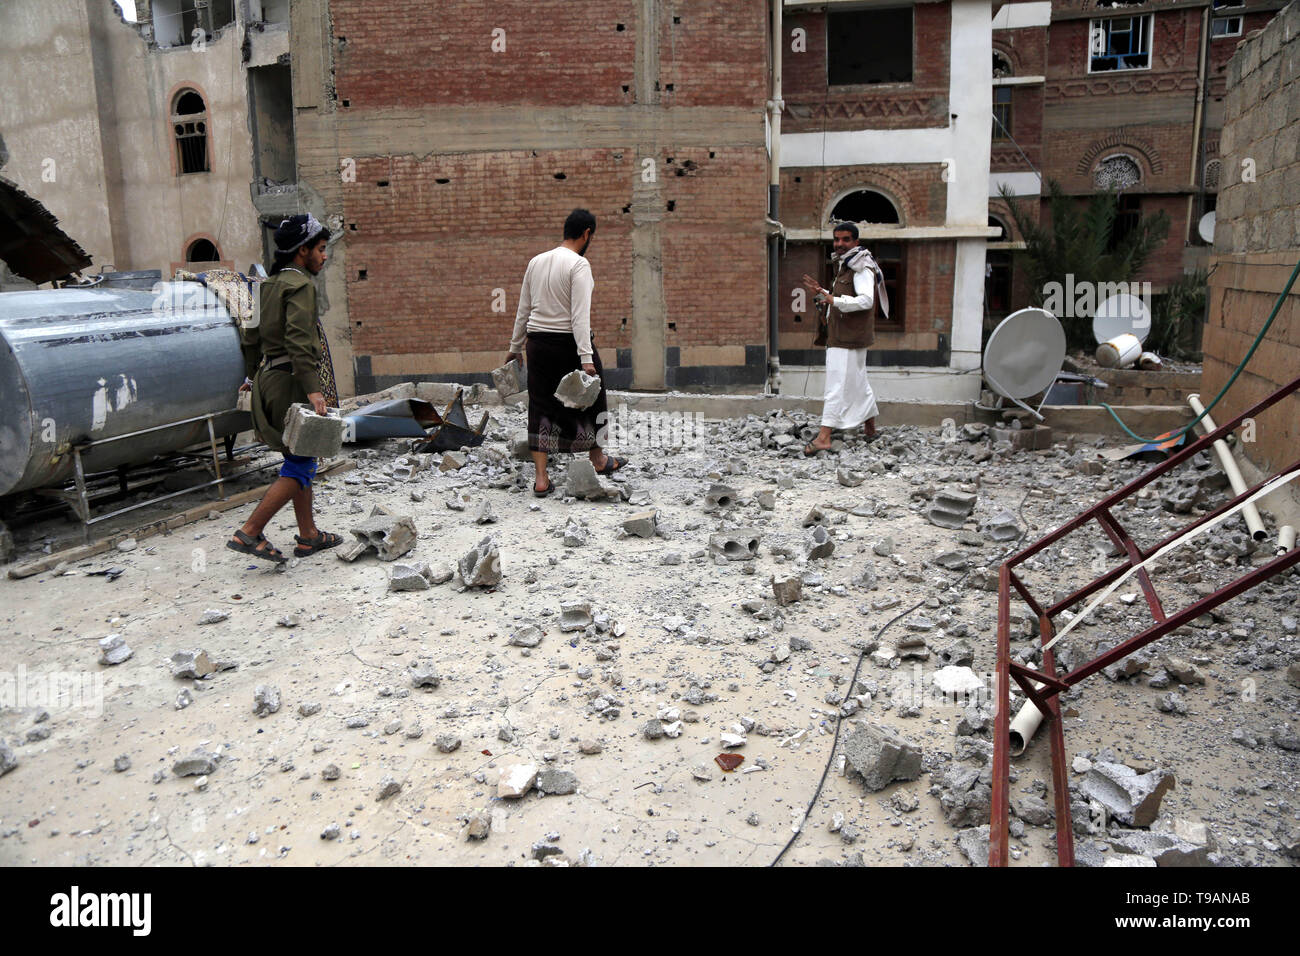 Sanaa, Yemen. 17th May, 2019. People clear debris after airstrikes hit the area in Sanaa, Yemen, on May 17, 2019. The Saudi Arabia-led coalition launched airstrikes on Houthi rebels' targets in the Yemeni capital Sanaa on Thursday morning, causing civilian casualties and damages, authorities and local residents said. Credit: Mohammed Mohammed/Xinhua/Alamy Live News - Stock Image